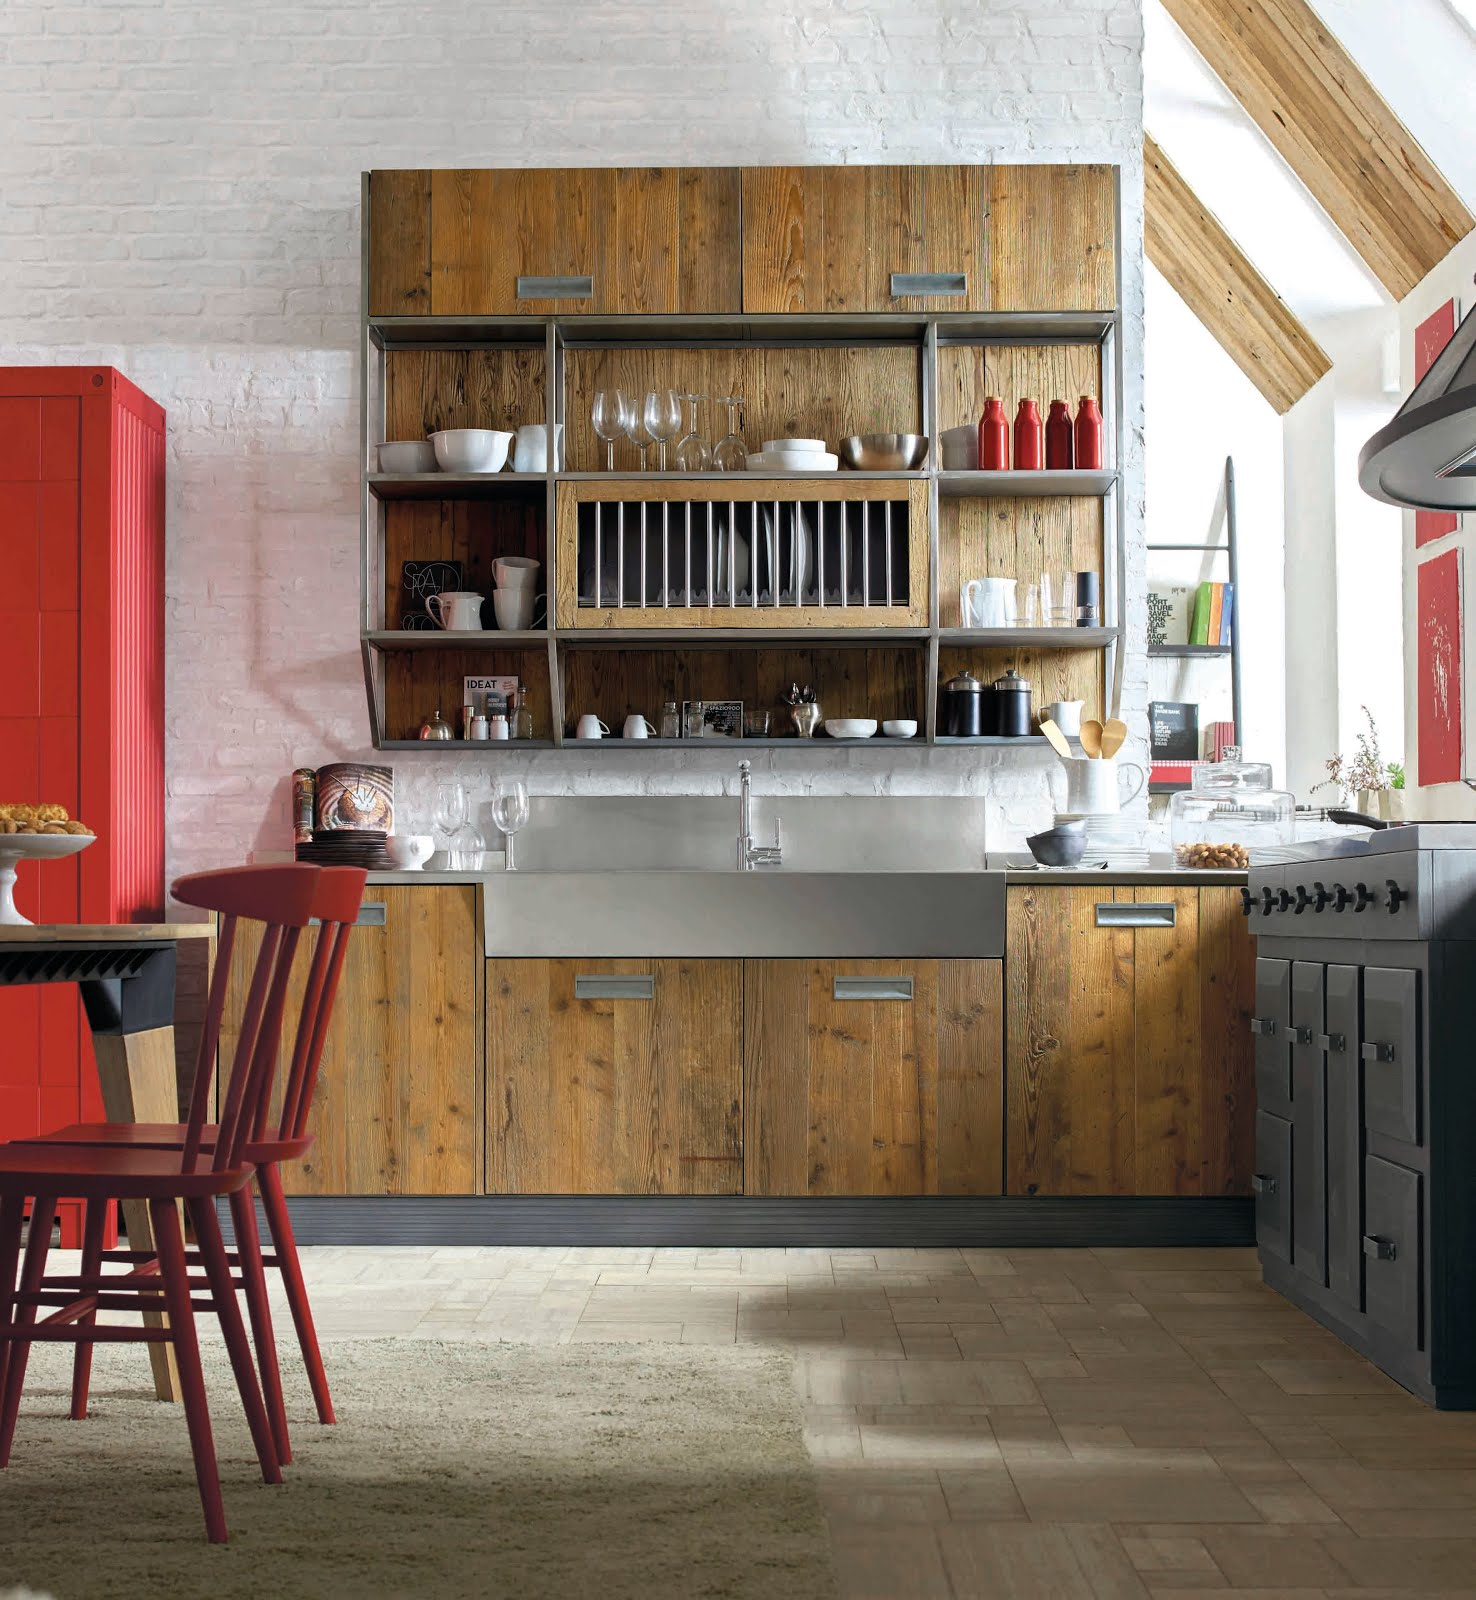 Awesome Marche Cucine Economiche Pictures - Skilifts.us - skilifts.us